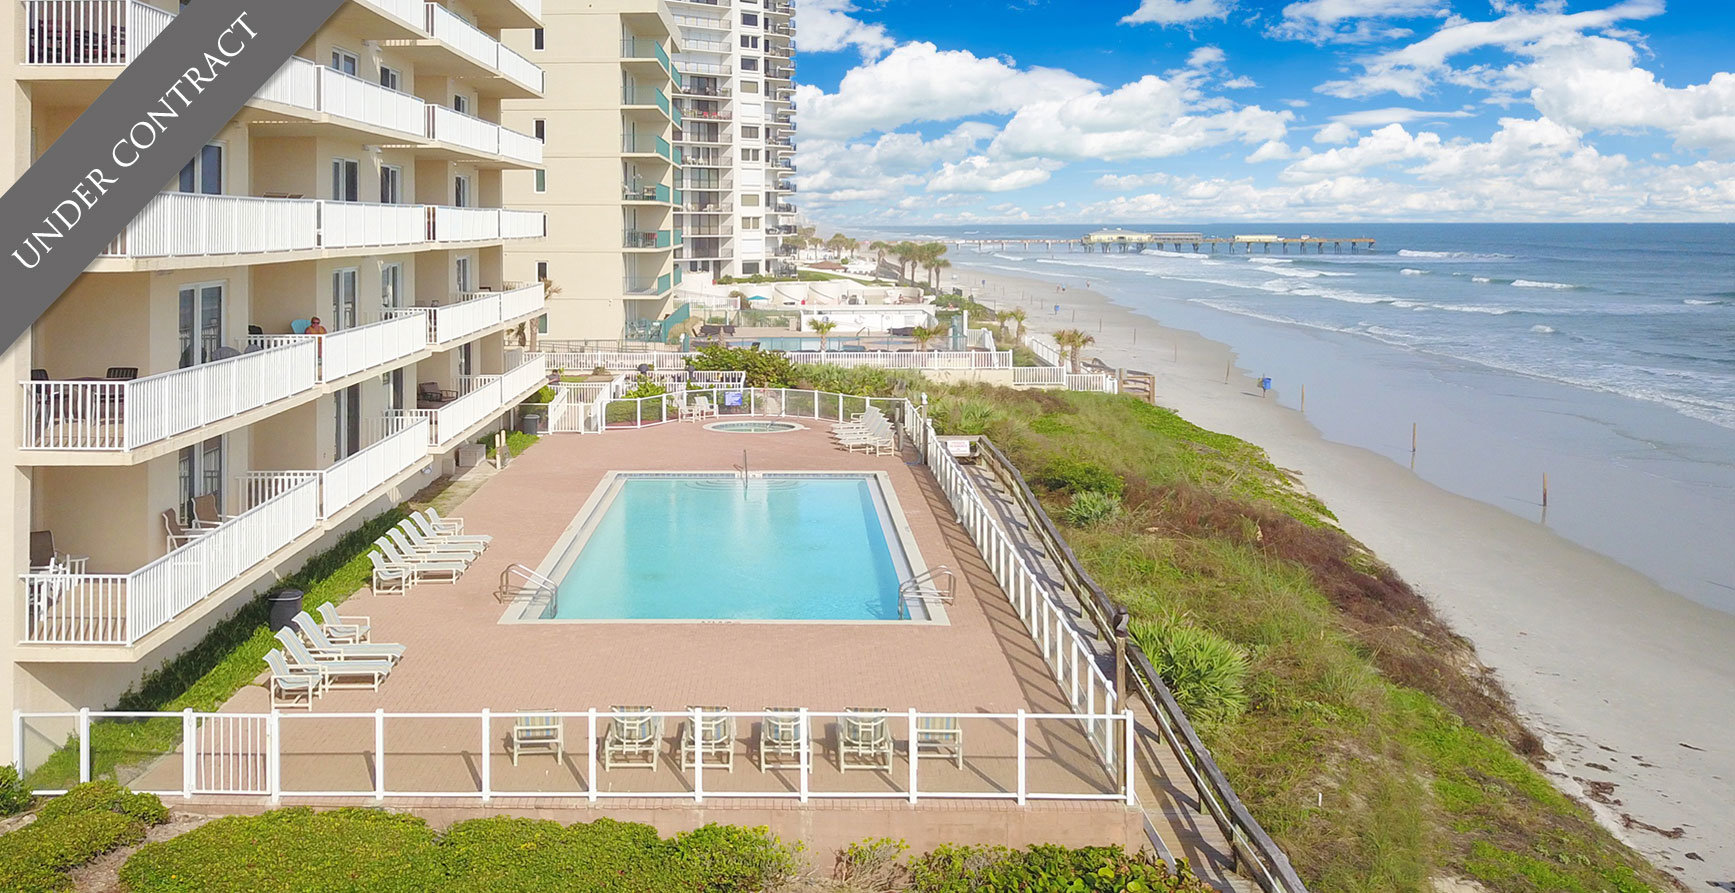 Sanibel oceanfront condos For Sale at 3799 S Atlantic Ave Daytona Beach  Shores Now Sold The LUXE Group 386-299-4043